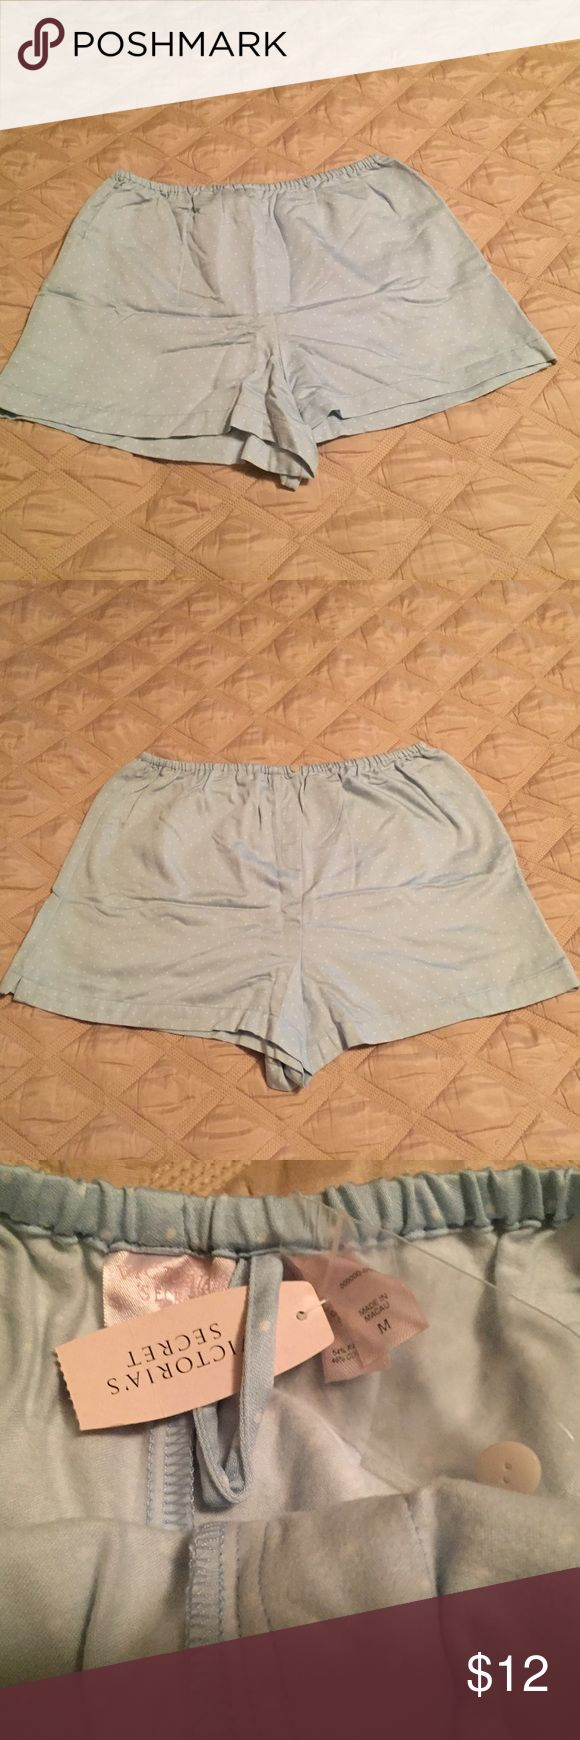 VICTORIA'S SECRET Female Boxer Shorts (MED)  ~ NWT VICTORIA'S SECRET  Female Boxer Shorts  light blue with white polka dots Size: Medium 54% Rayon 46% Cotton  Elastic Waistband One small button for show in front Victoria's Secret Intimates & Sleepwear Panties